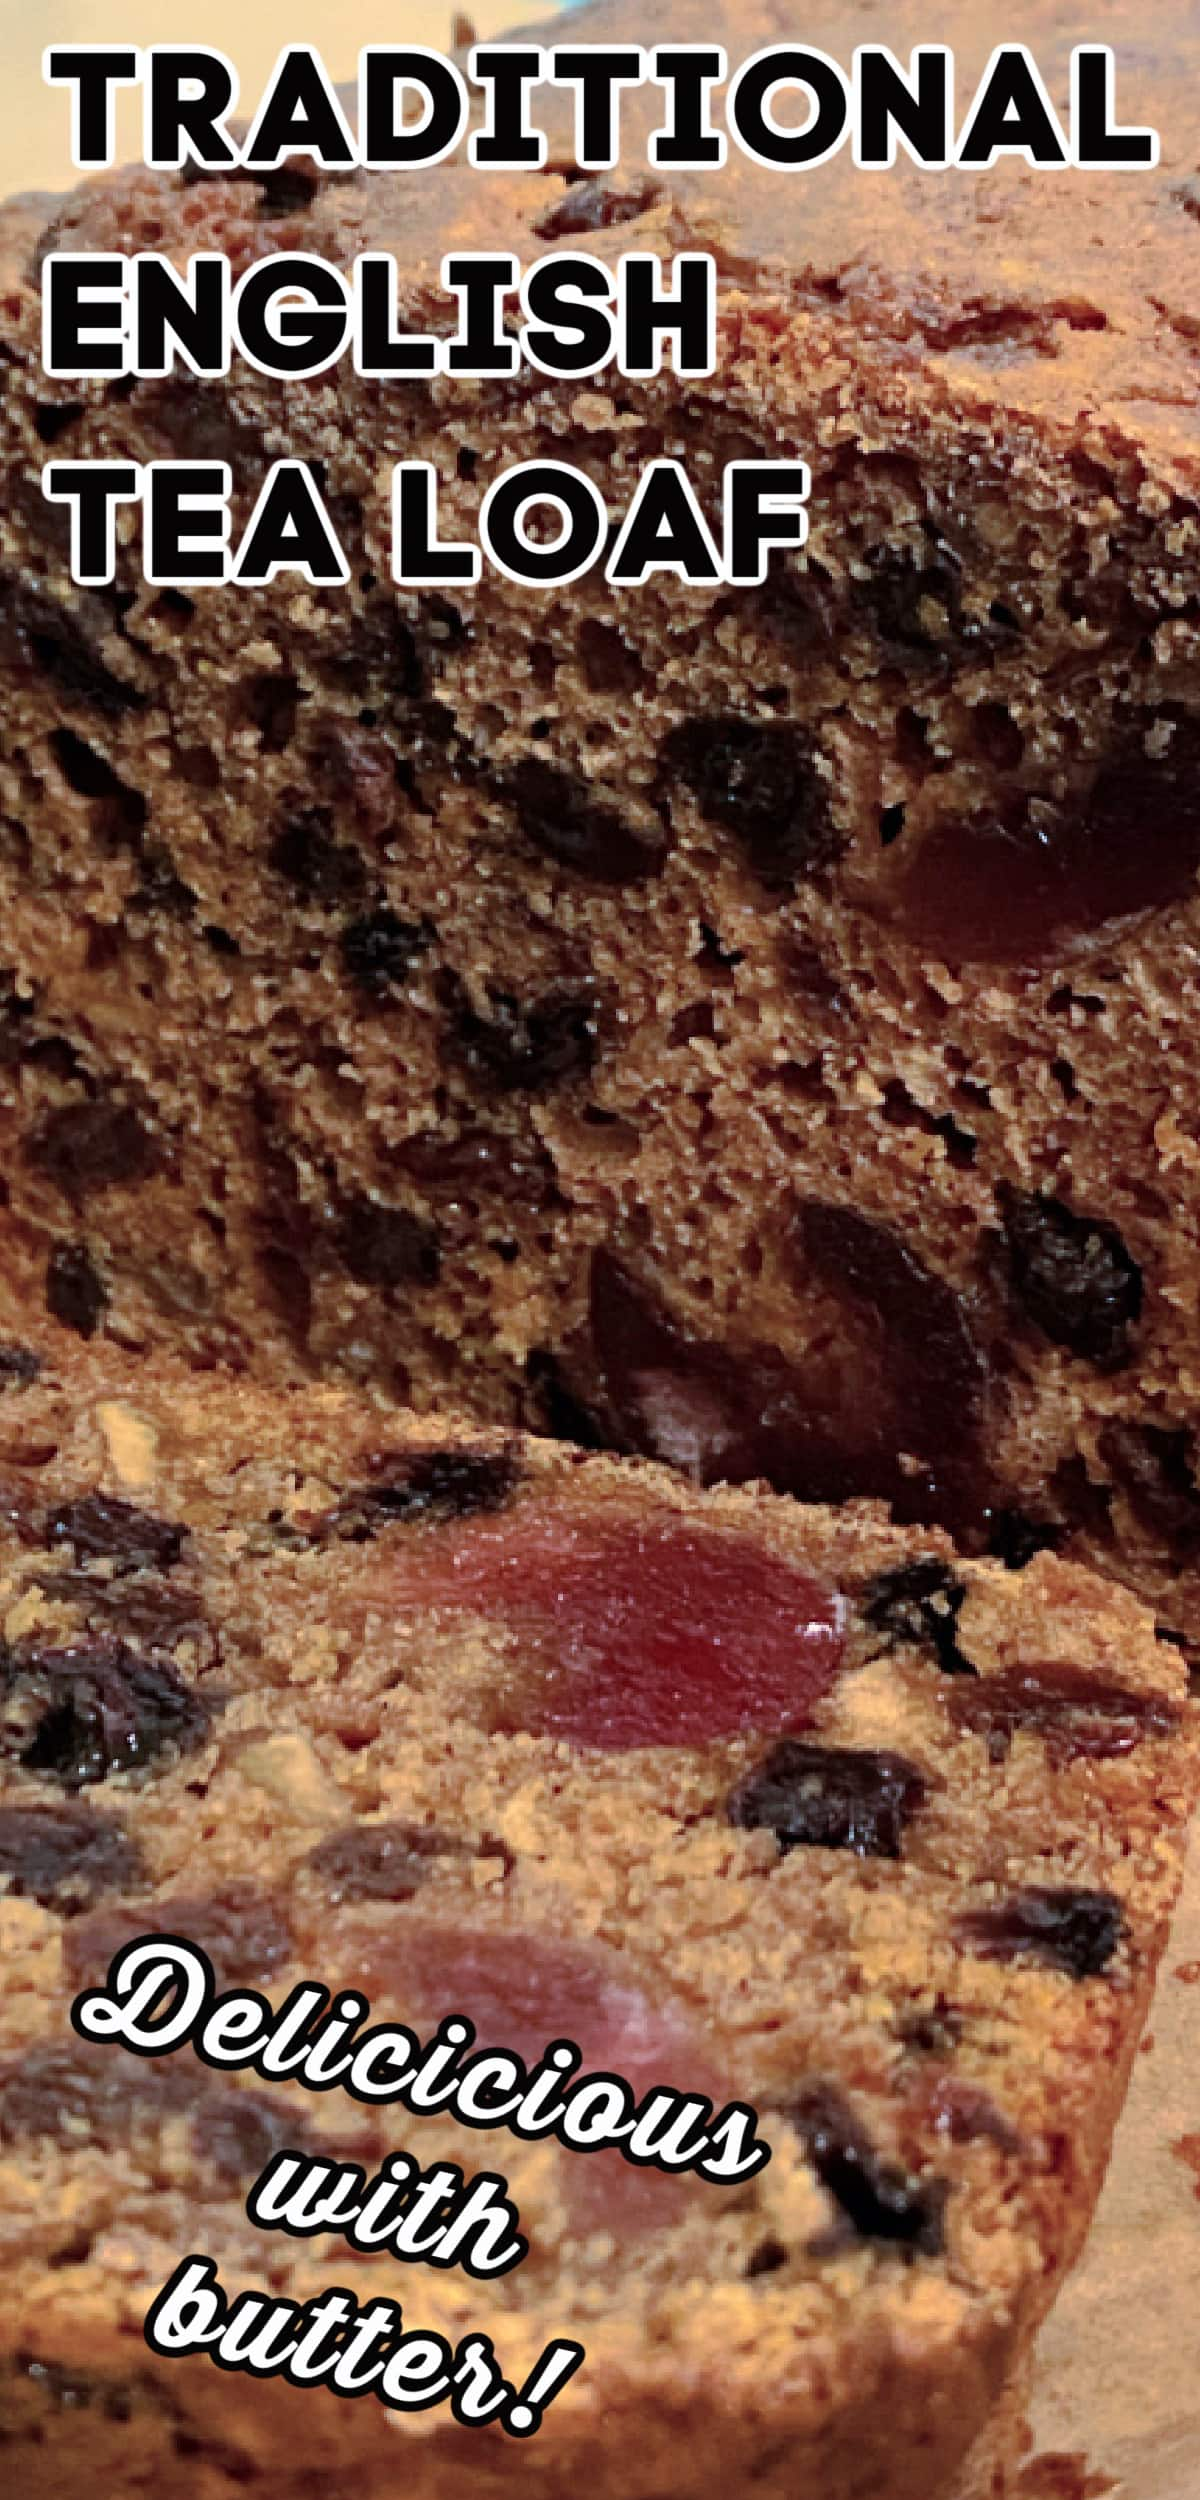 Traditional English Tea Loaf. Delicious tea-soaked dried fruits fill this soft, moist, sweet bread. Traditionally served with a spread of butter alongside afternoon tea.